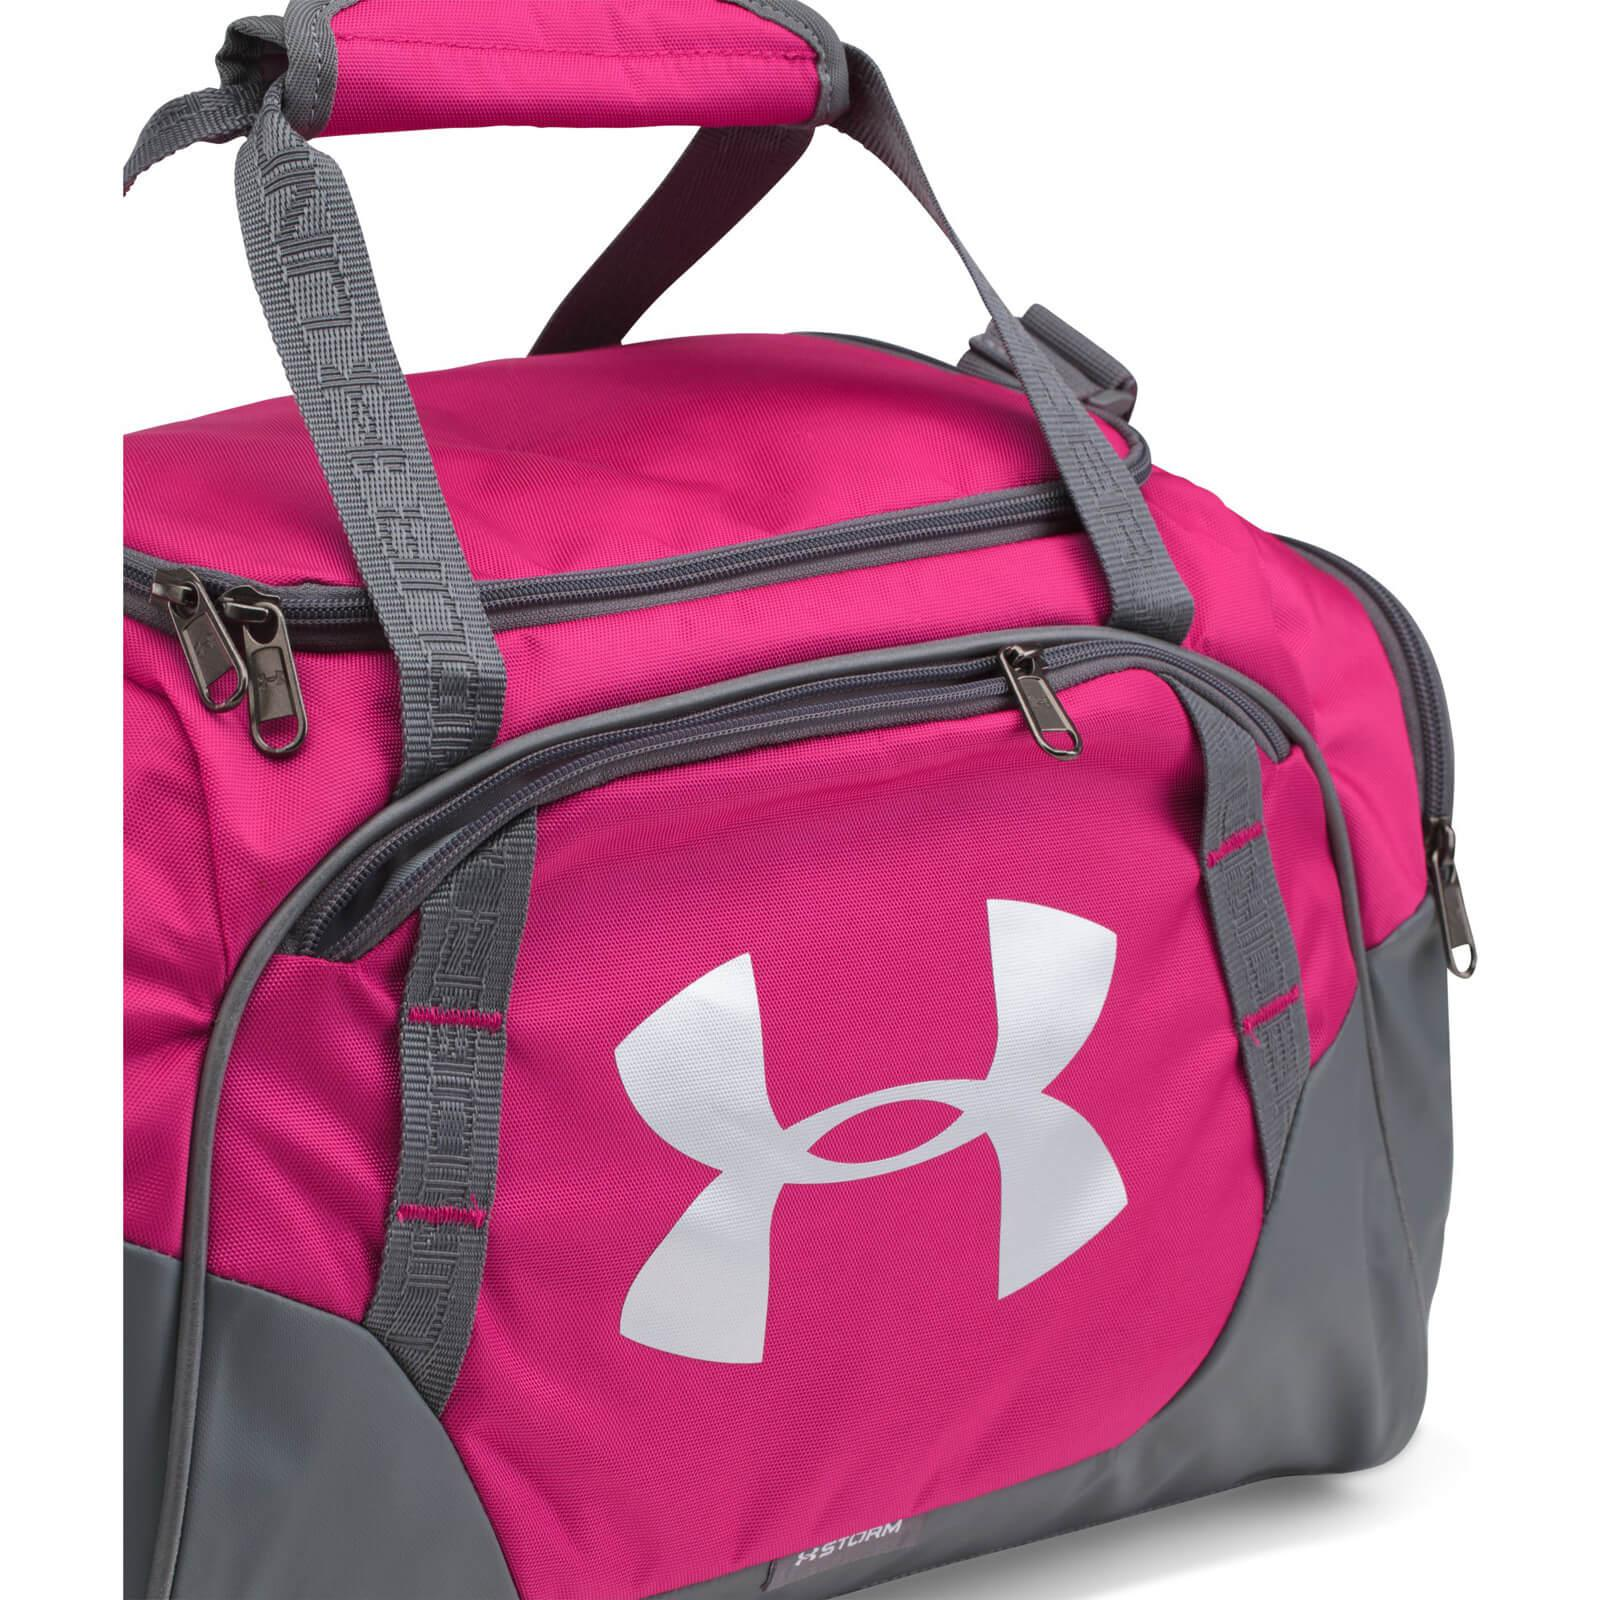 4edfcb3cde2a Under Armour The Works Gym Bag 2.0